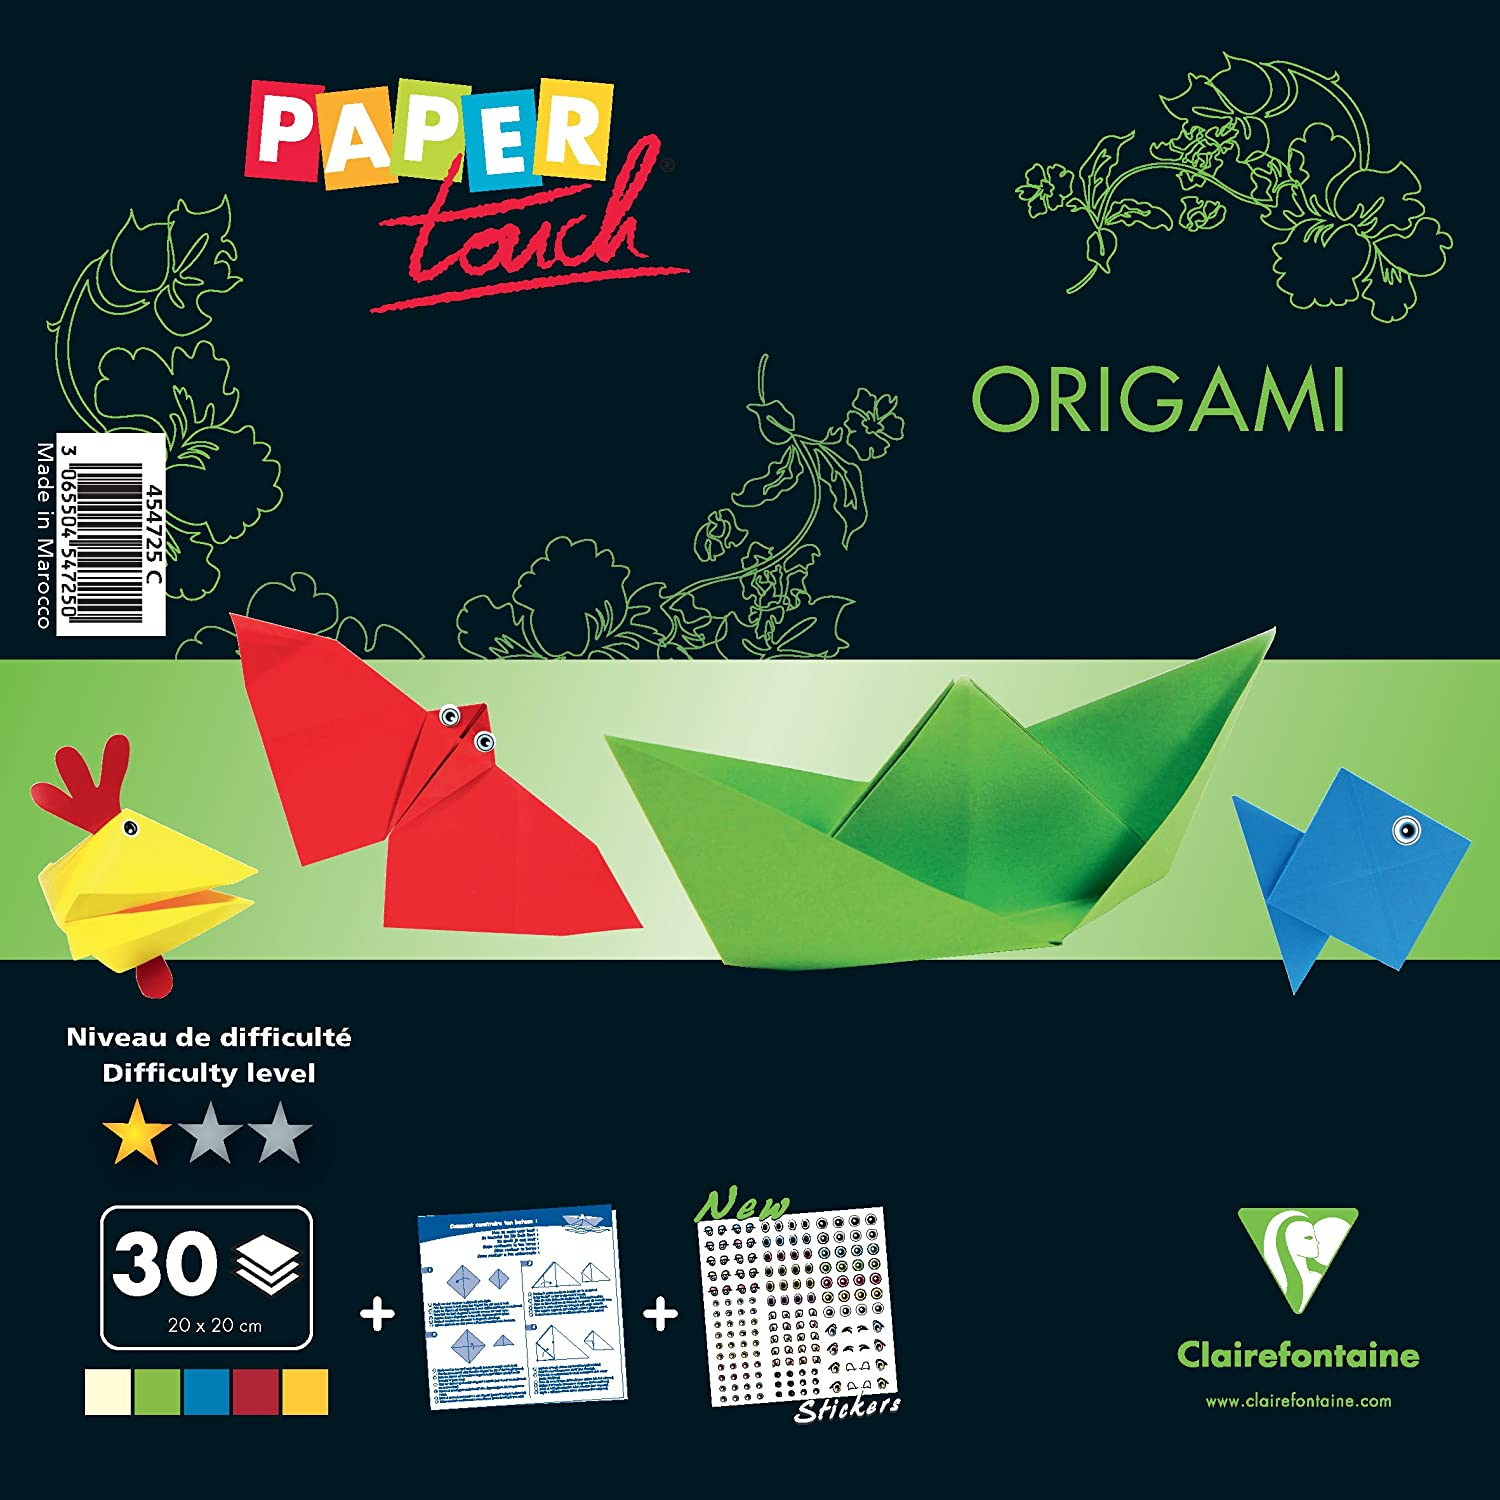 Clairefontaine 20 x 20 cm Hard Skill Level Paper Touch Origami Paper 80 g 30 Sheets